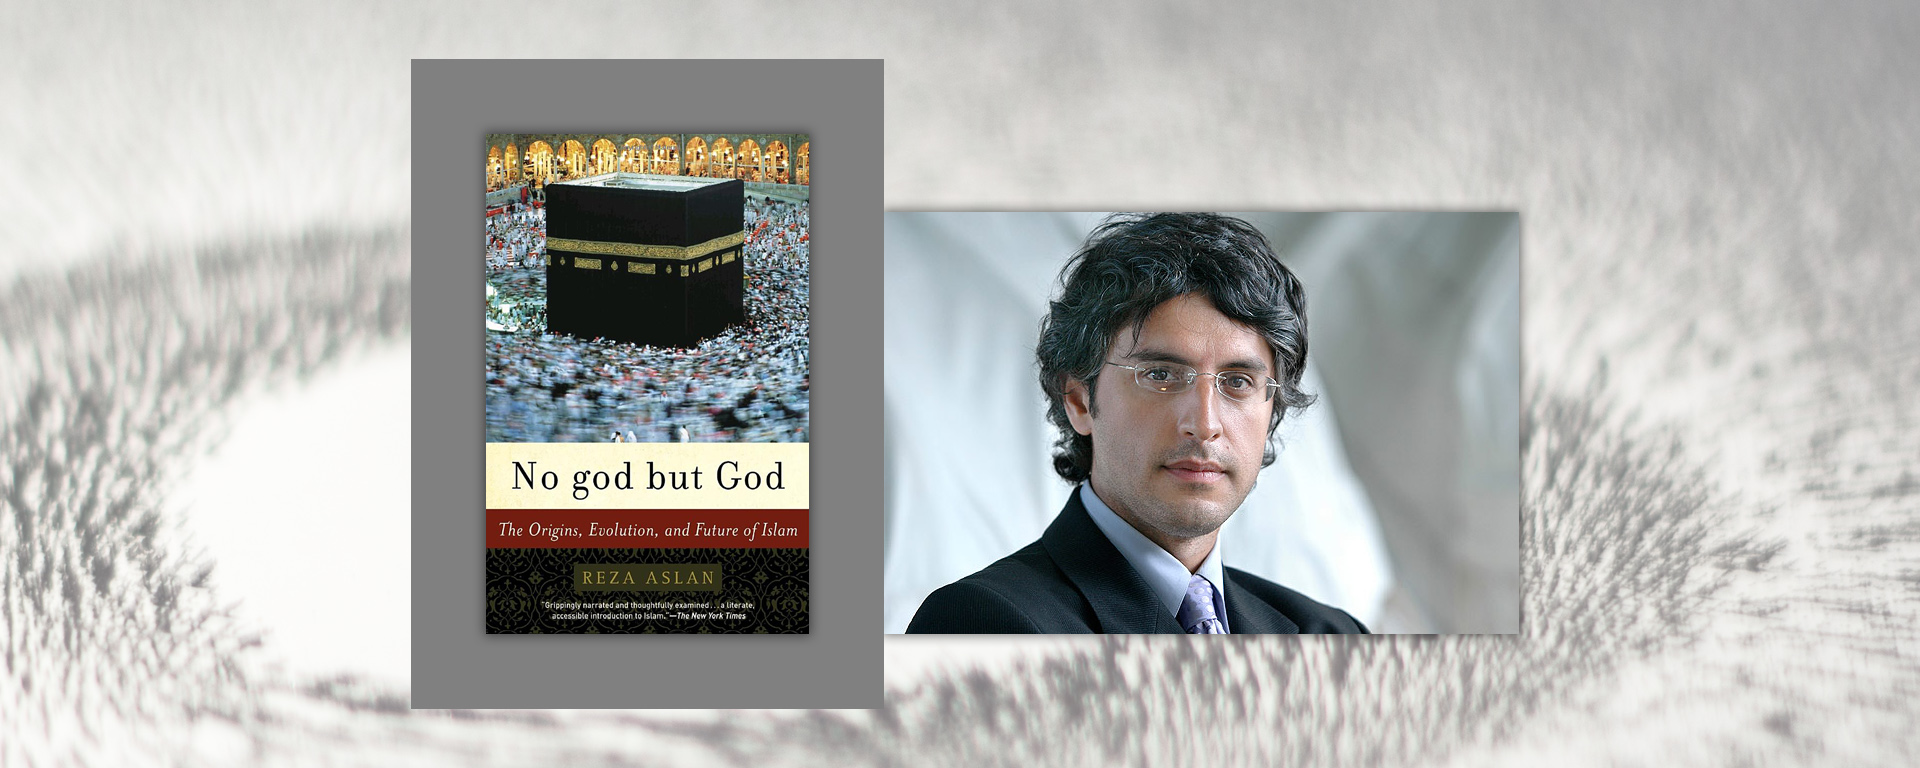 reza aslan no god but god thesis Get this from a library no god but god : the origins, evolution, and future of islam [reza aslan] -- presents the origins and history of islam, with emphasis on its.